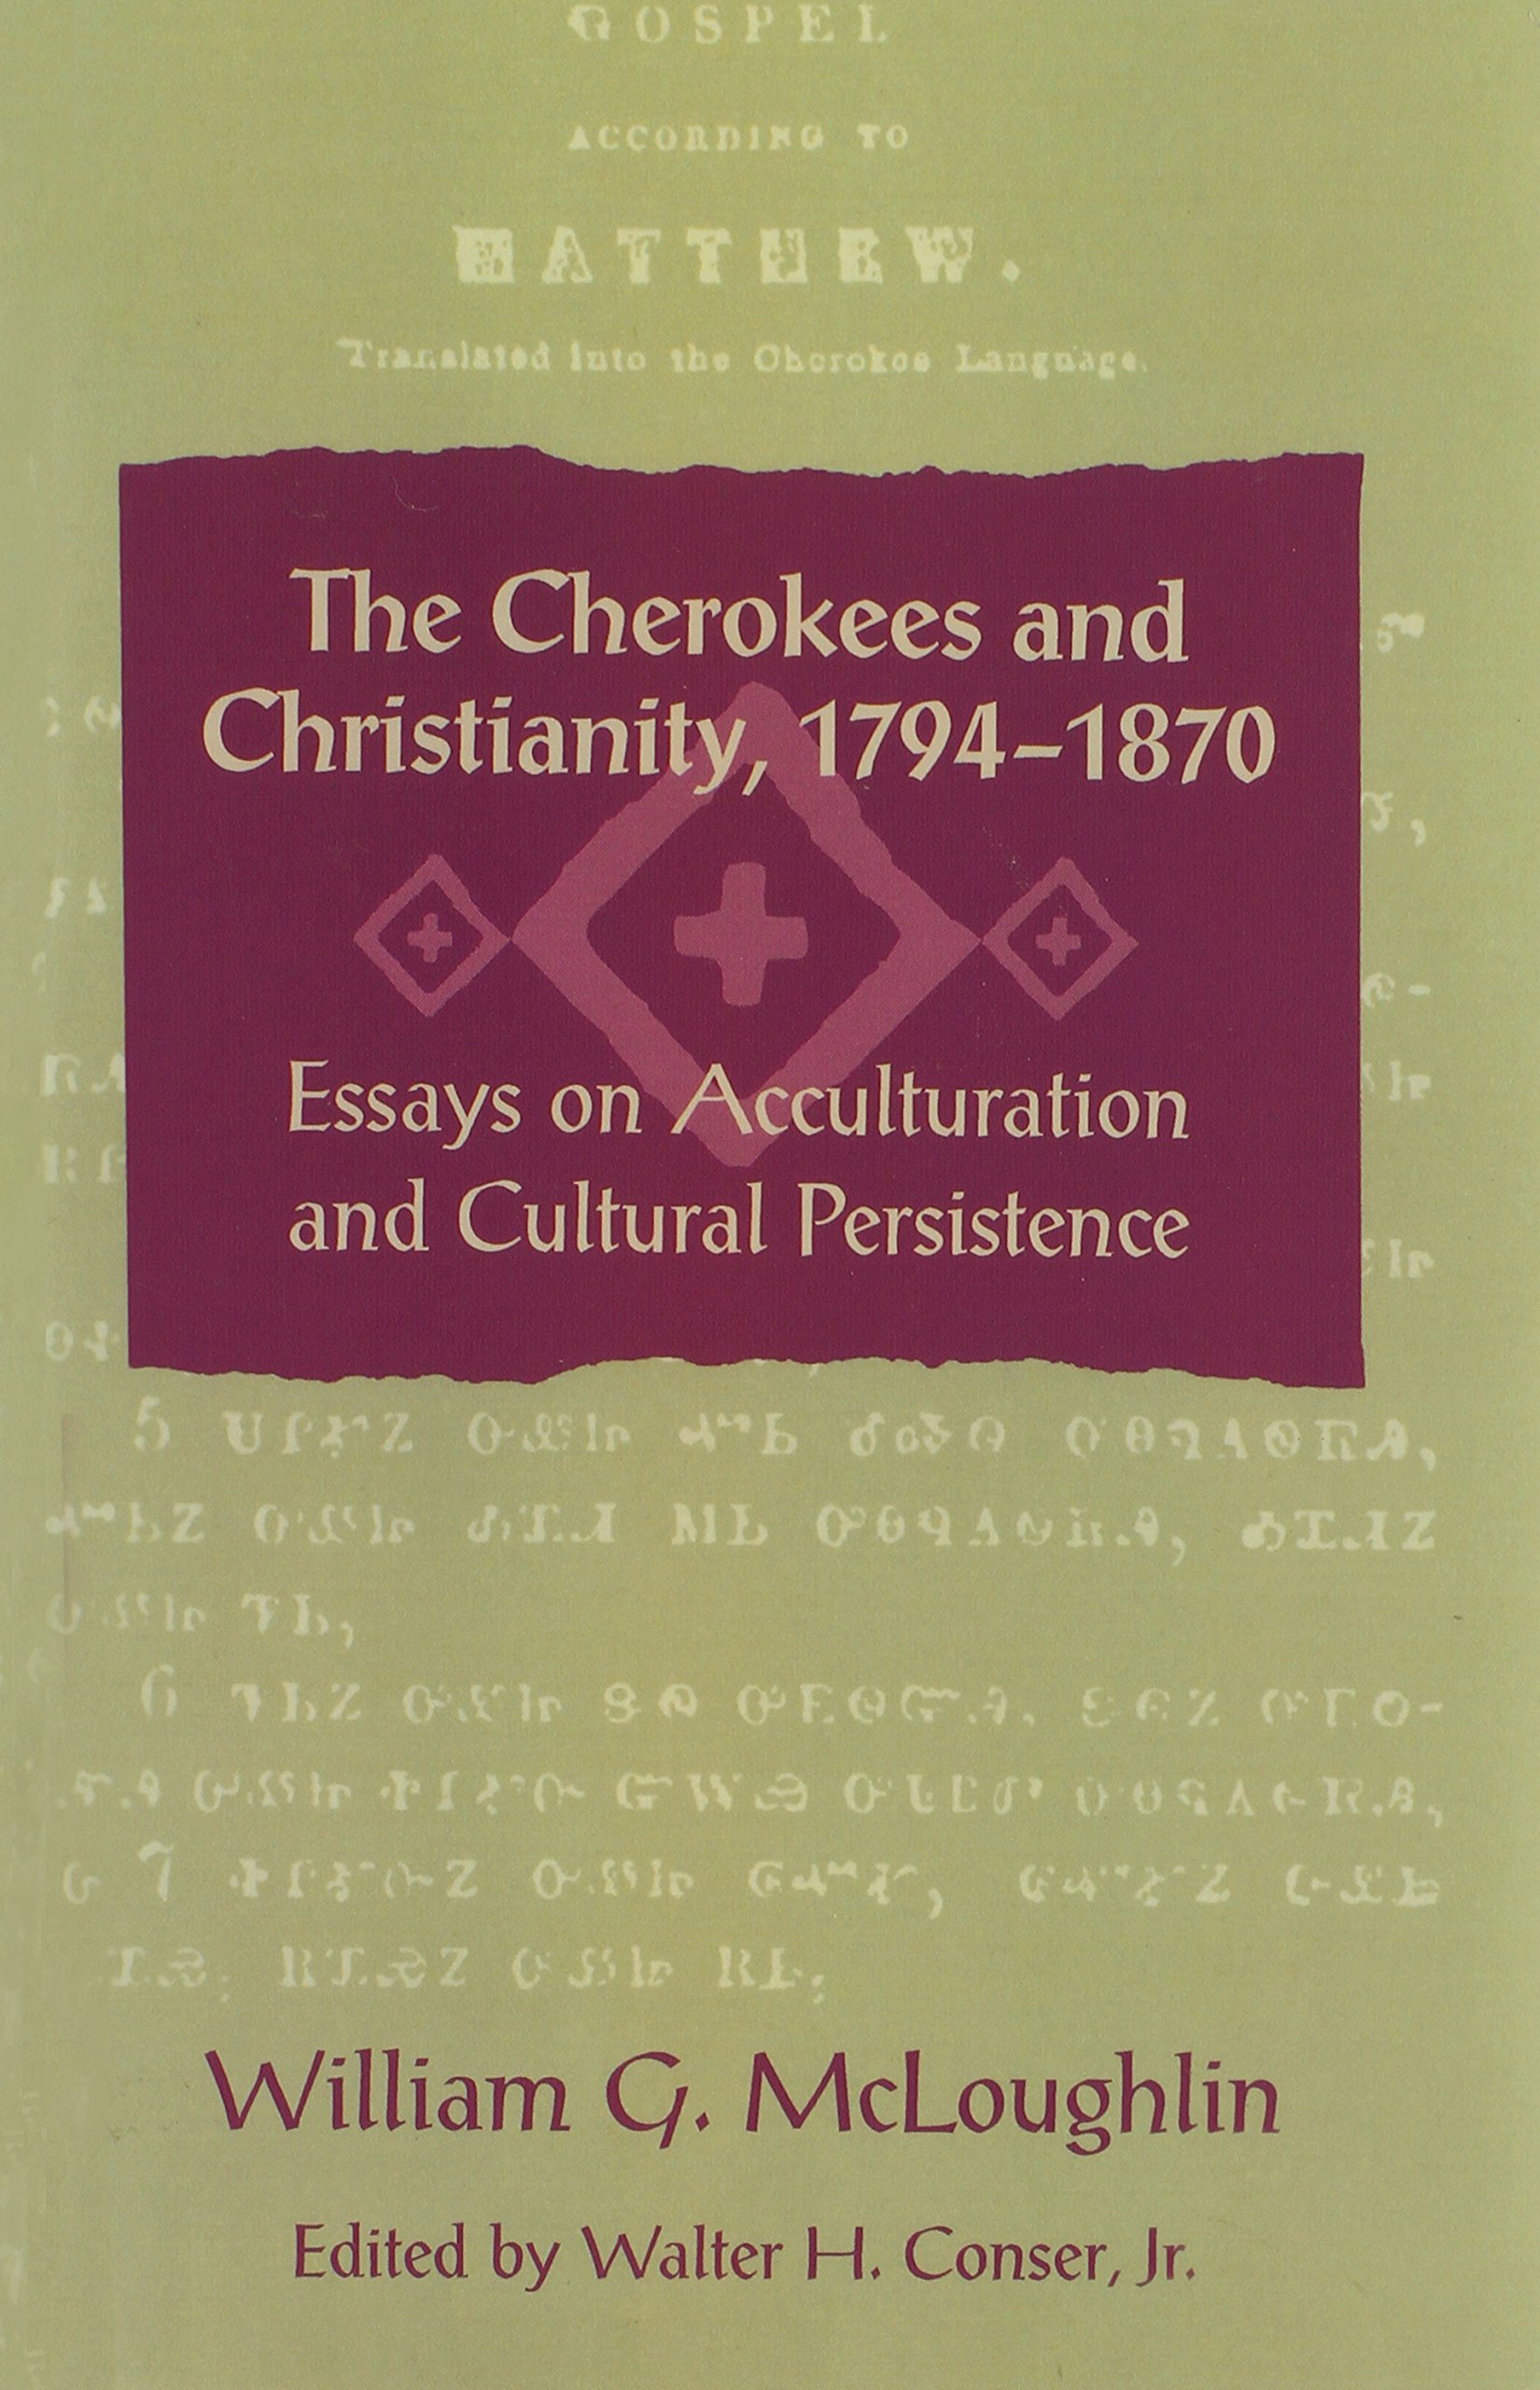 the cherokees and christianity 1794 1870 essays on acculturation the cherokees and christianity 1794 1870 essays on acculturation and cultural persistence walter conser jr 9780820331386 com books